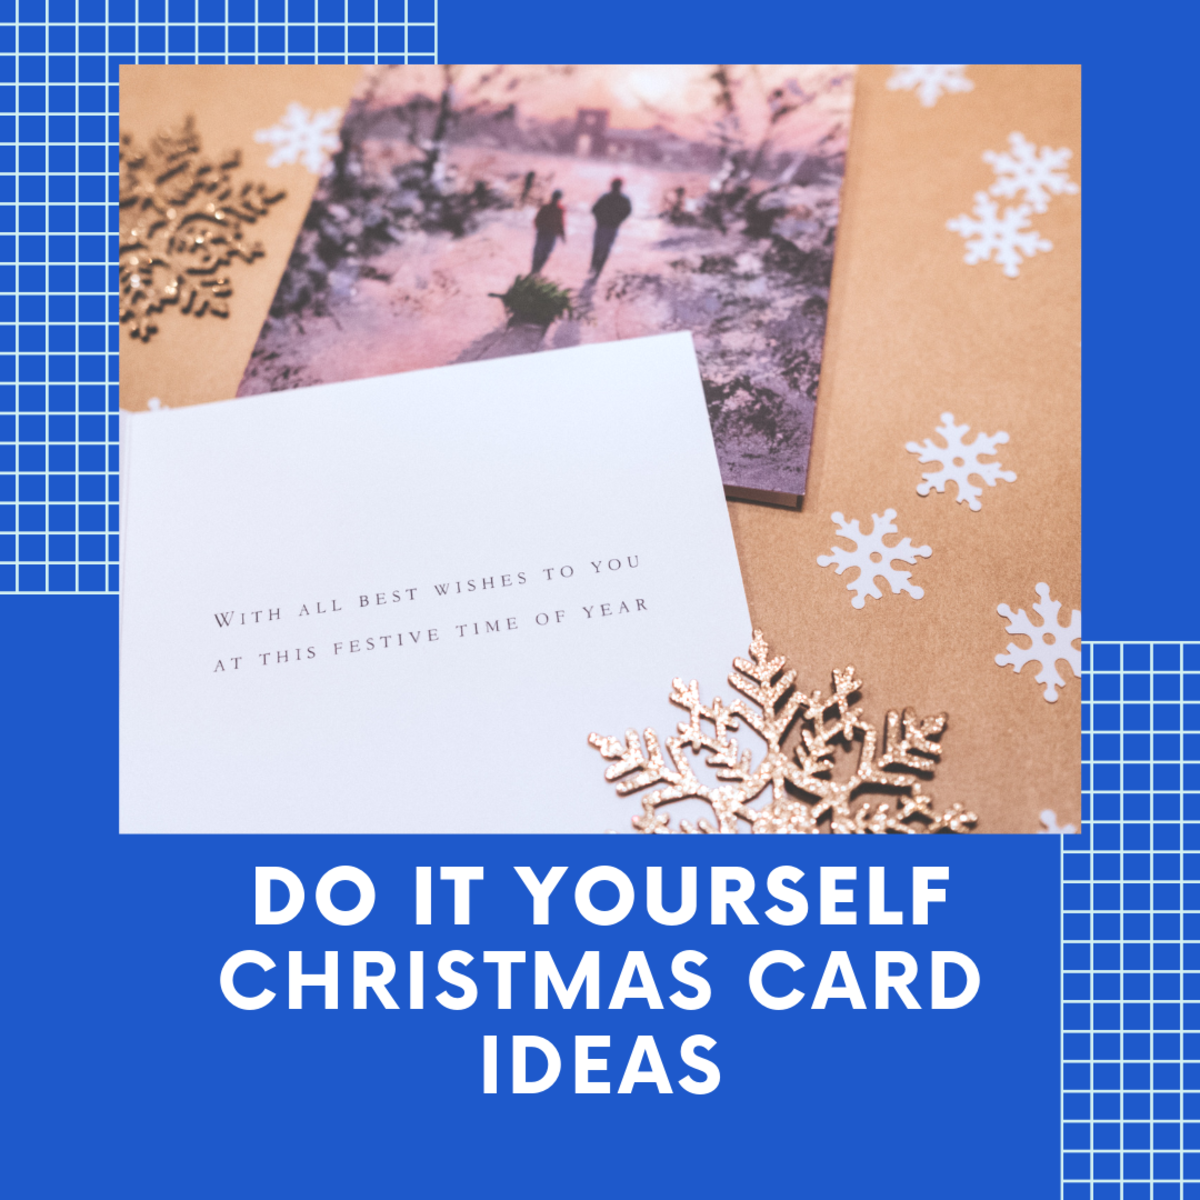 These Christmas and holiday cards are fun for the whole family!